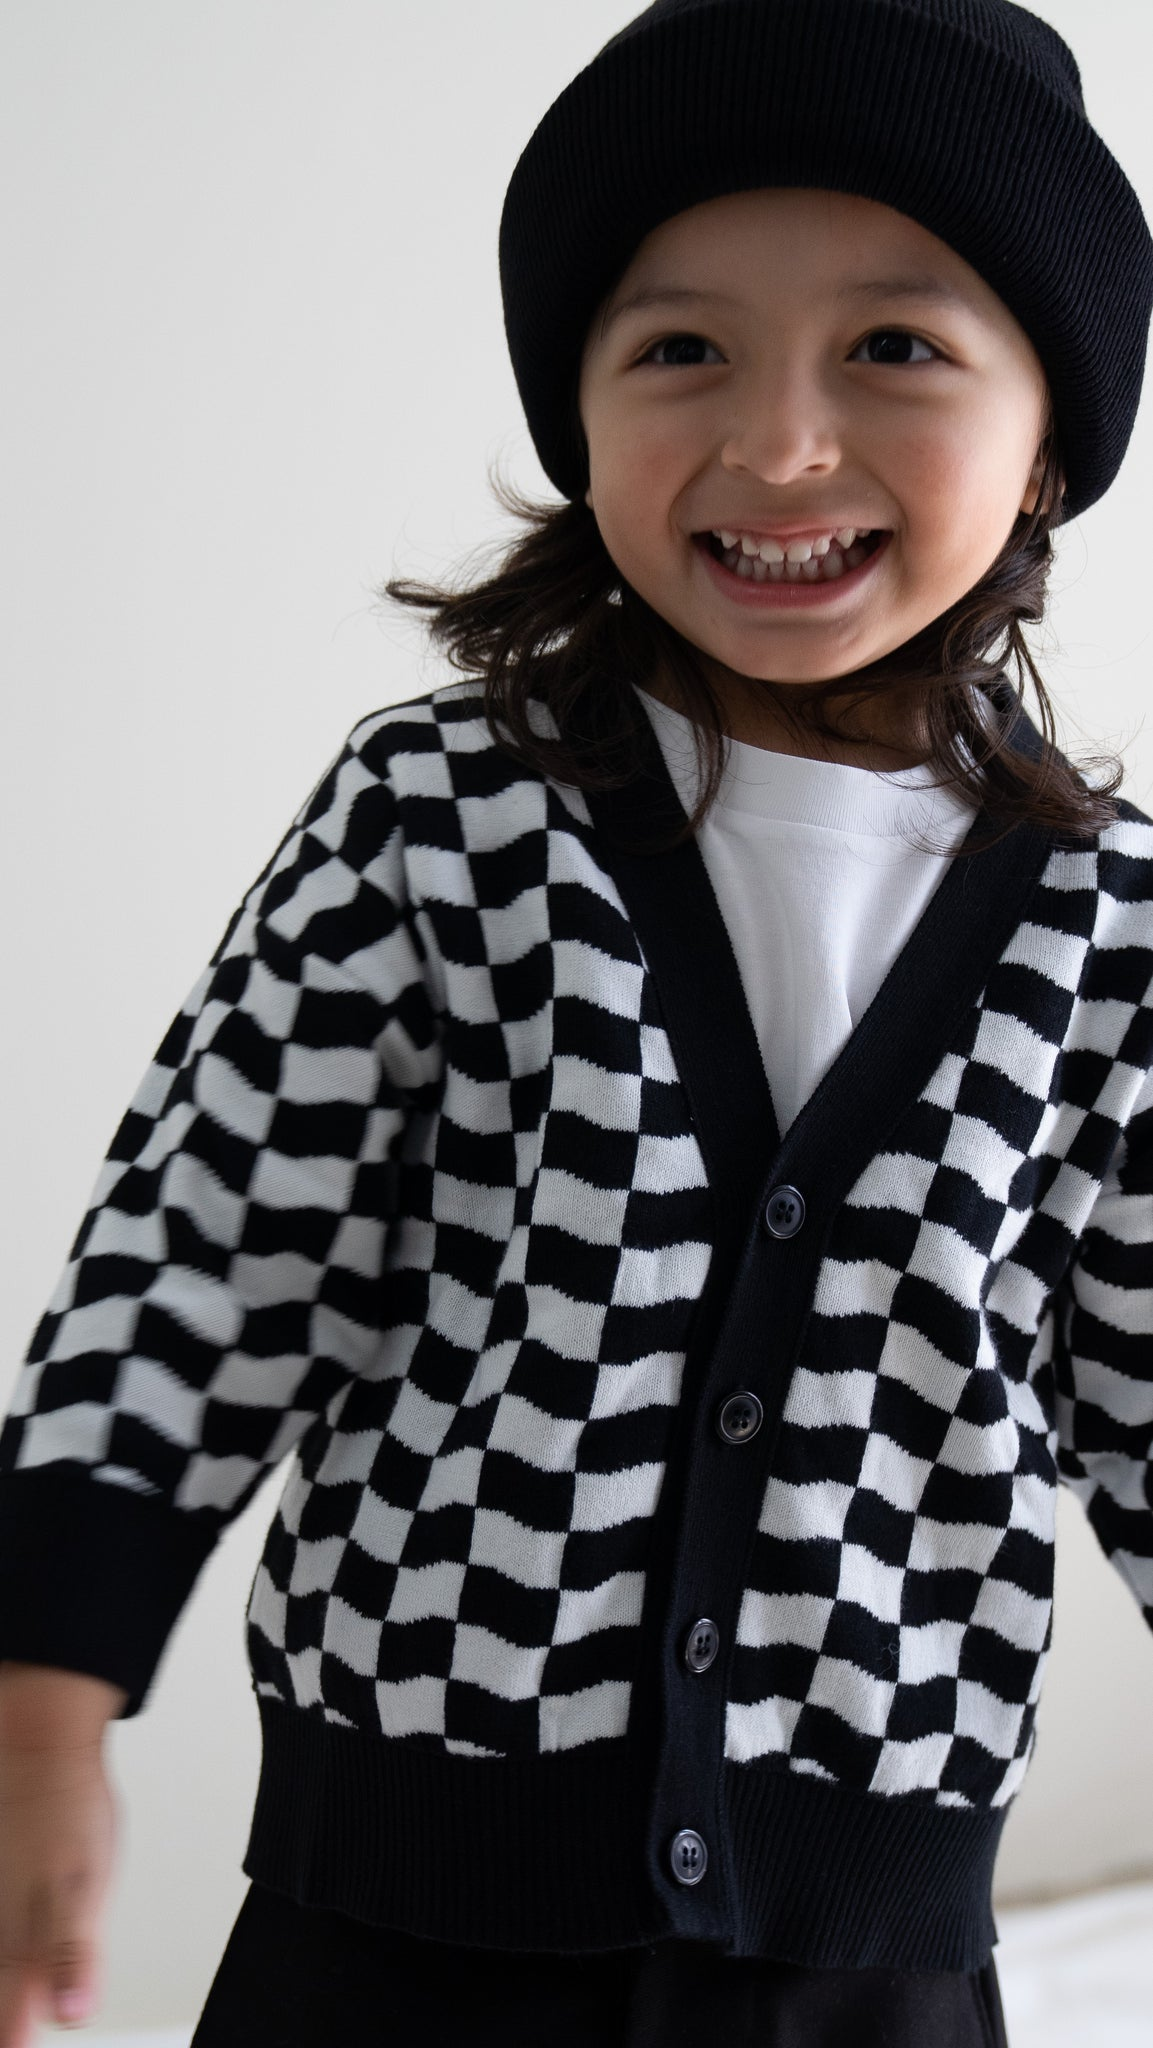 'wavy checkers' cardigan